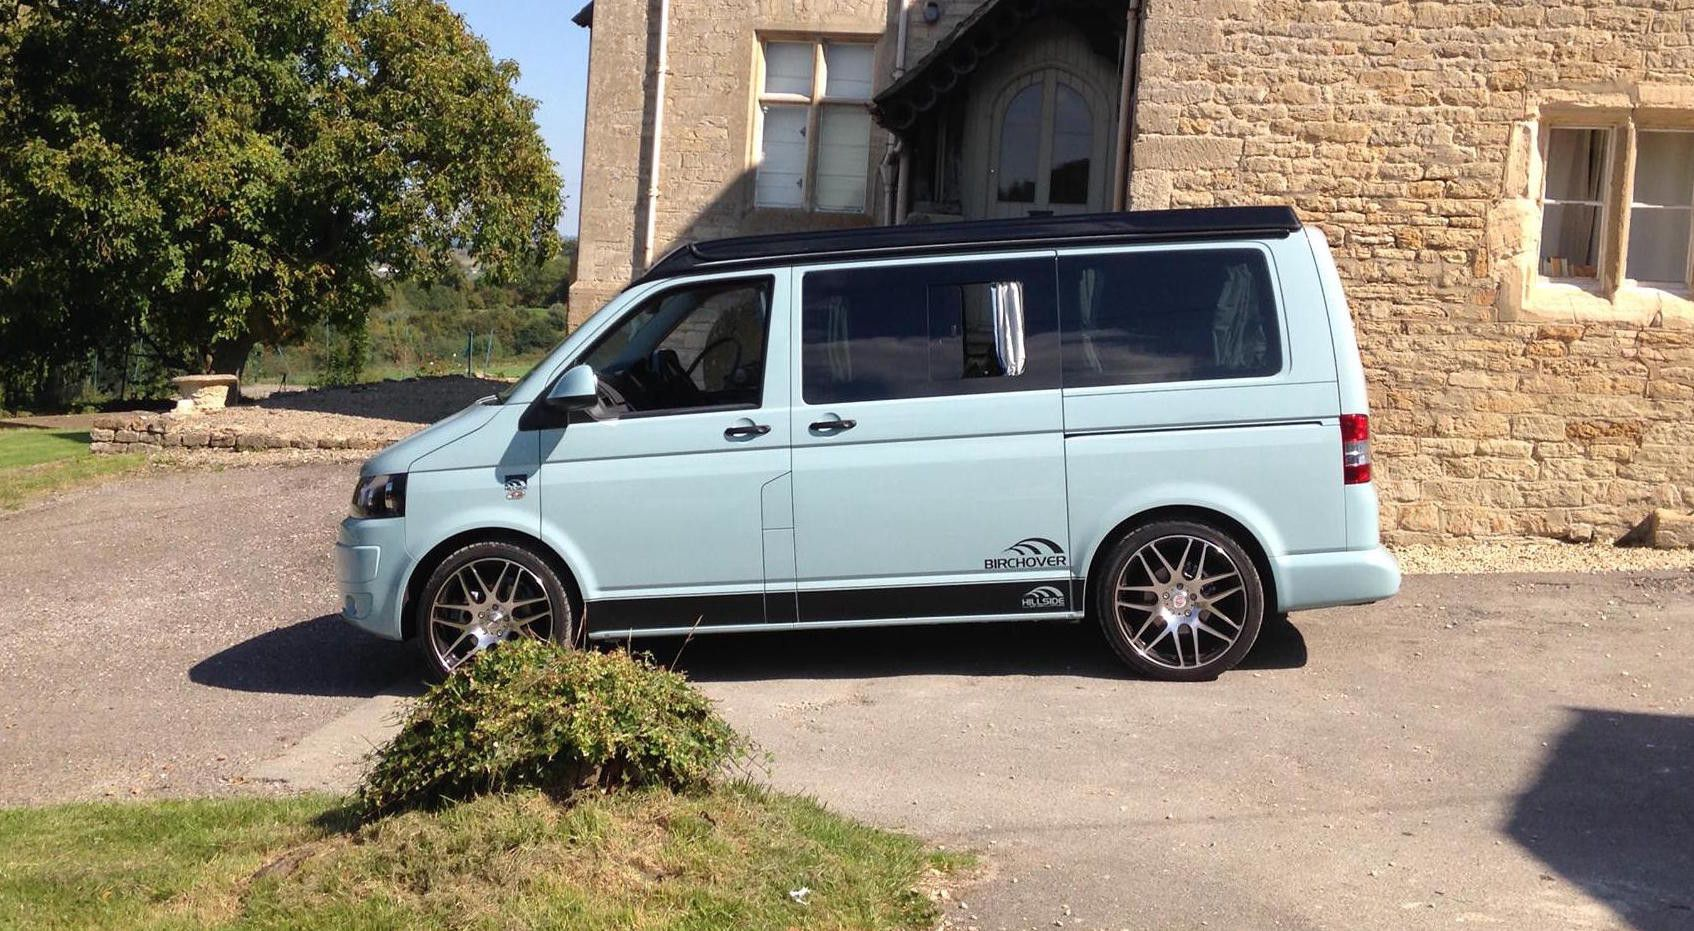 Tft Vw Campervan Hire England